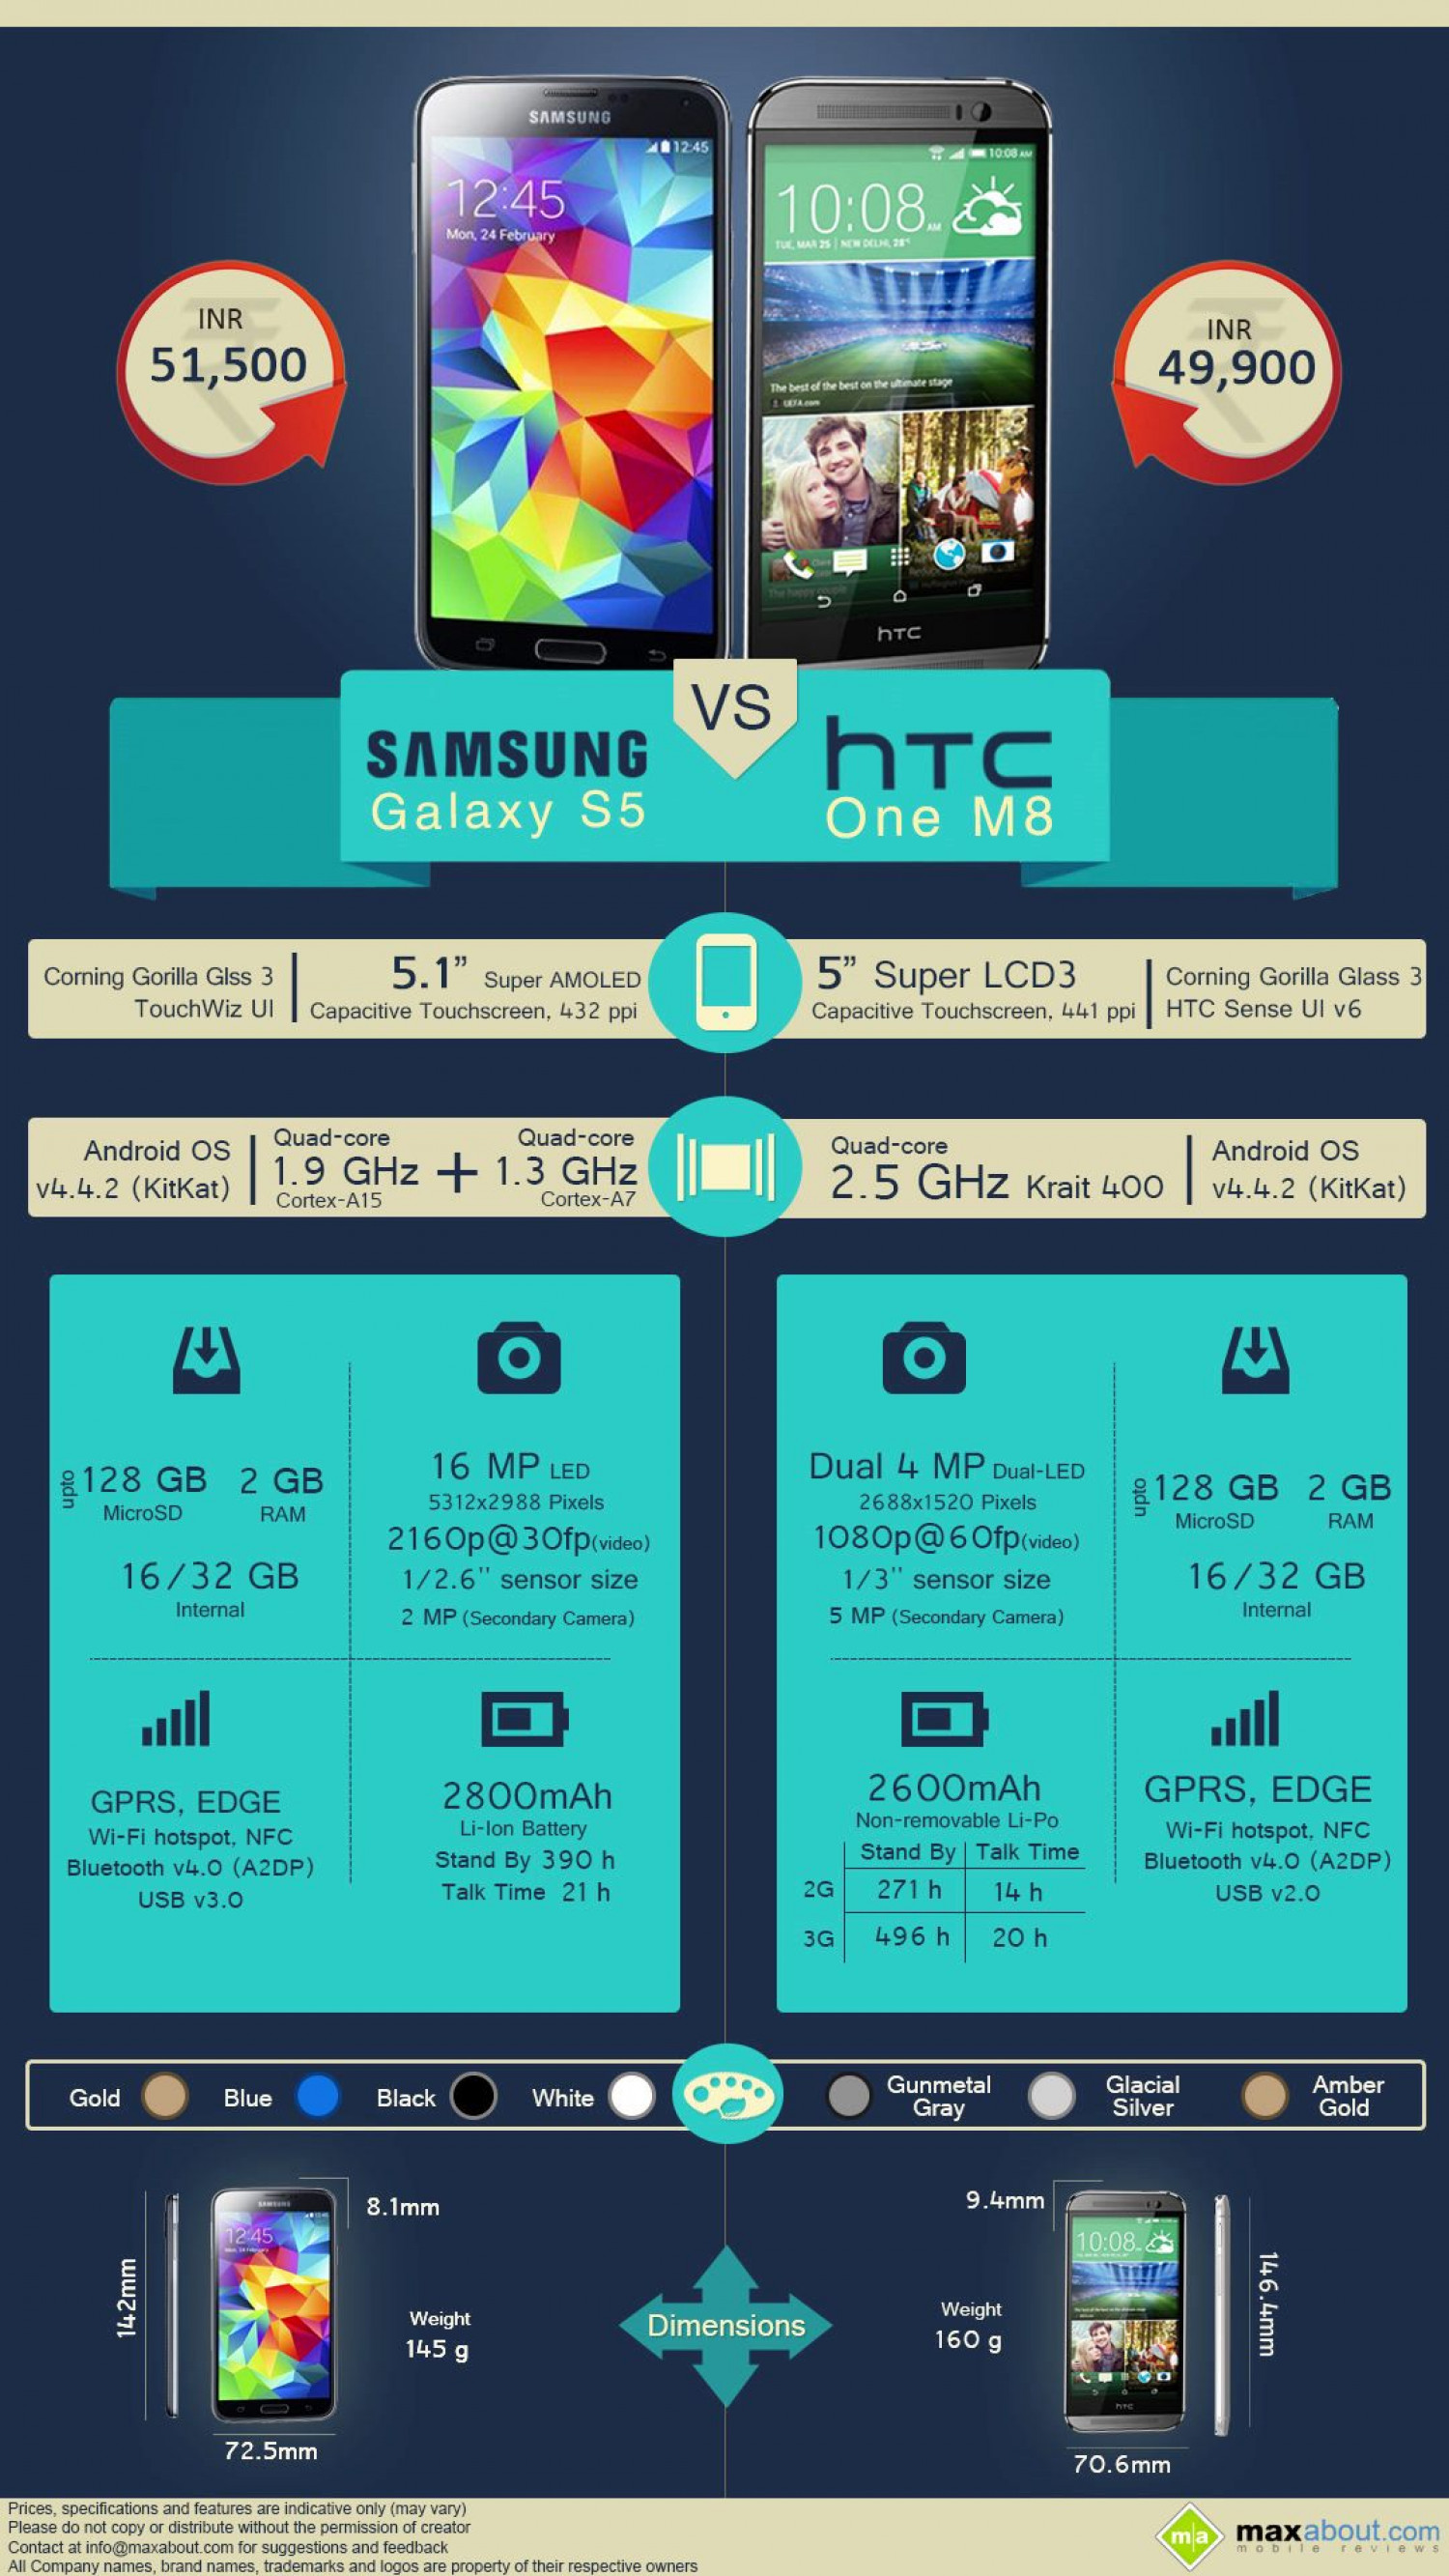 HTC One M8 vs. Samsung Galaxy S5 Infographic